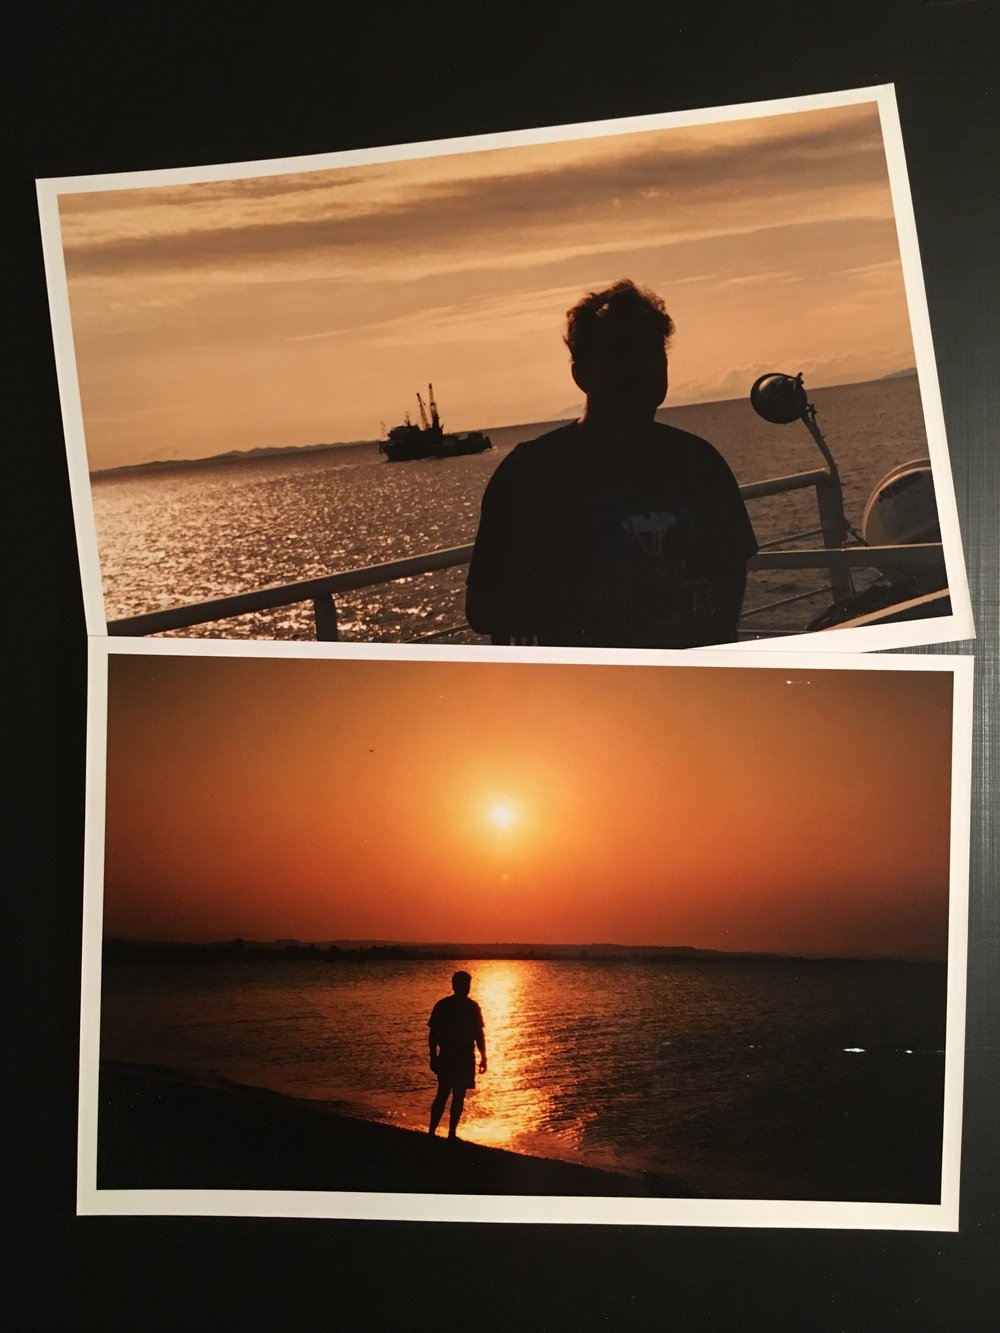 On the ferry and beach at sunset. Greece, early 90's.